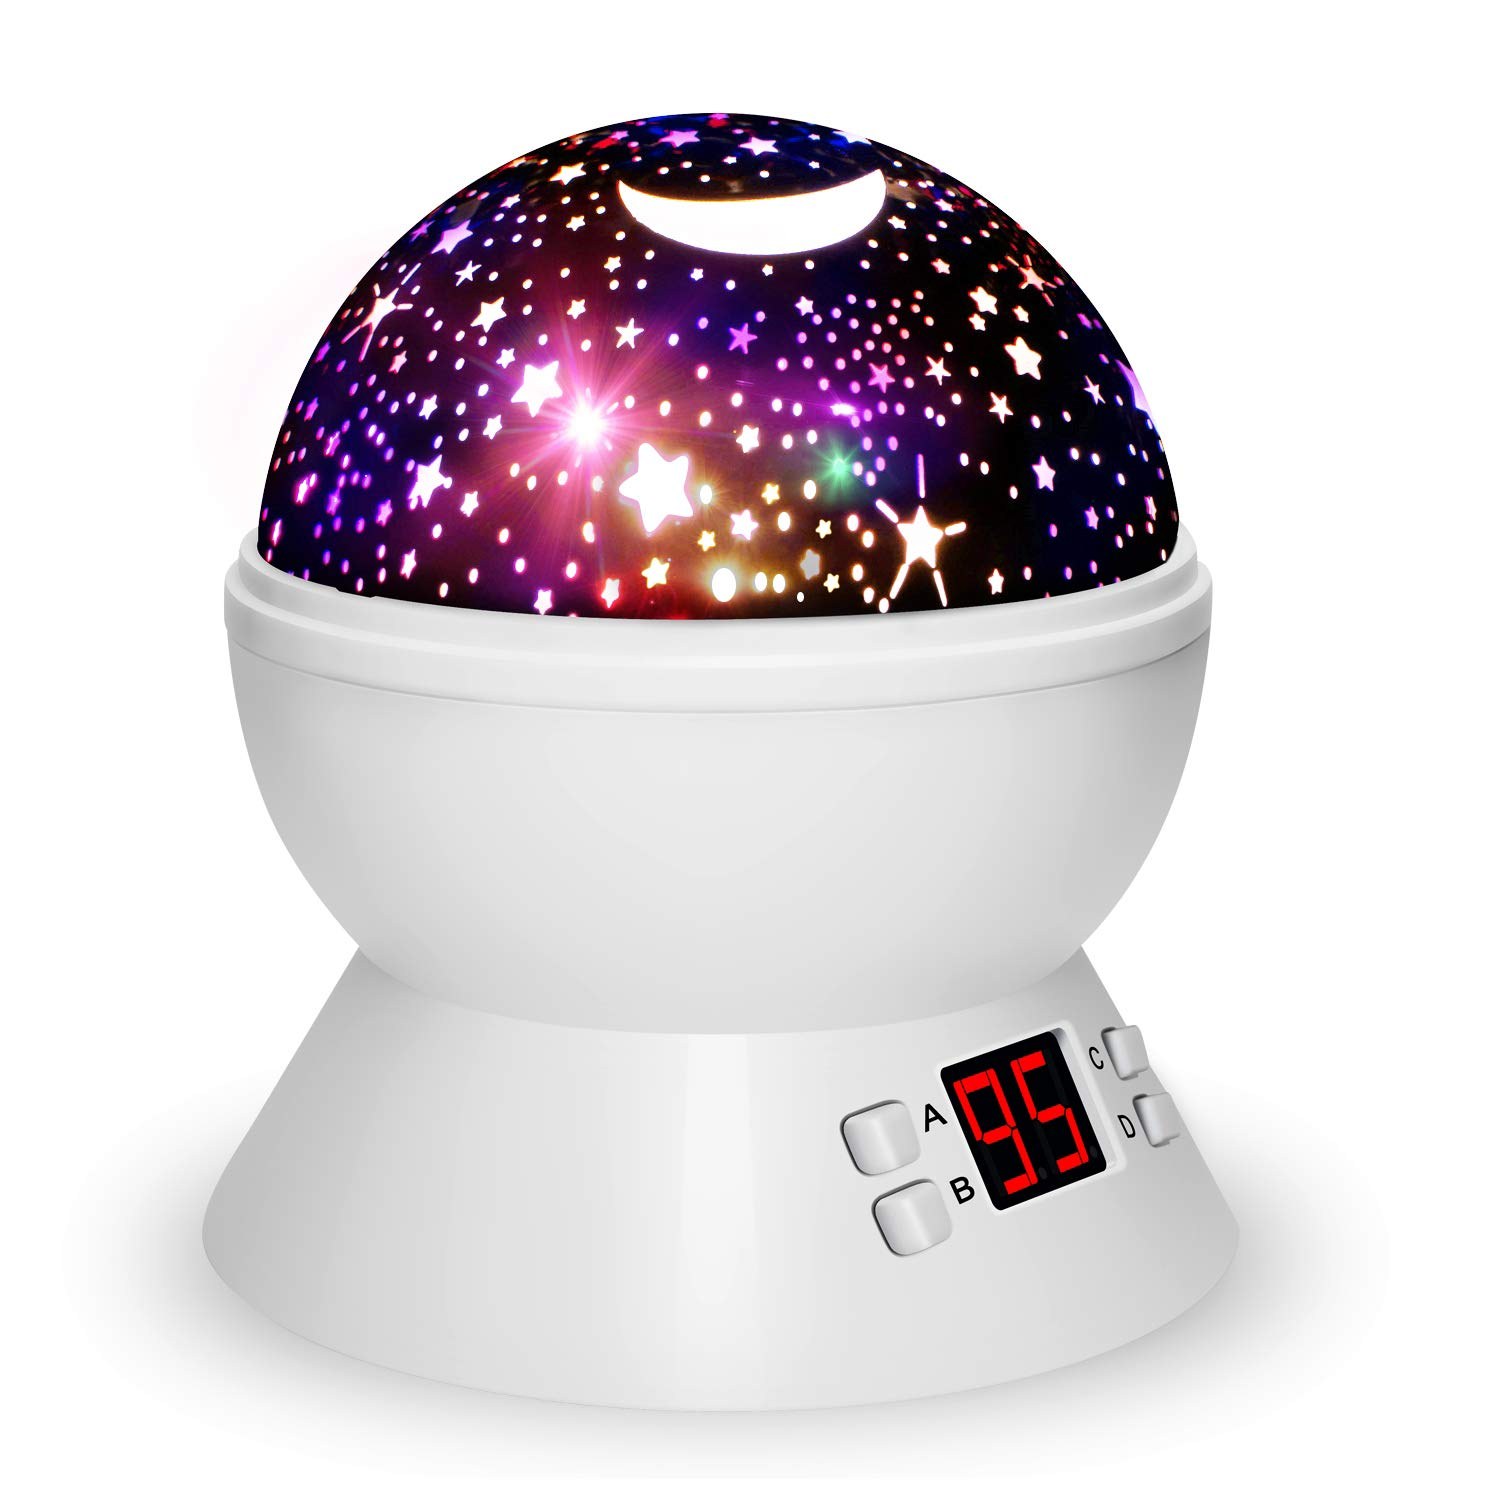 Night Lights for Kids with Timer, Star Projector for Kids Girls Boys and Baby Neteast 012-1361B